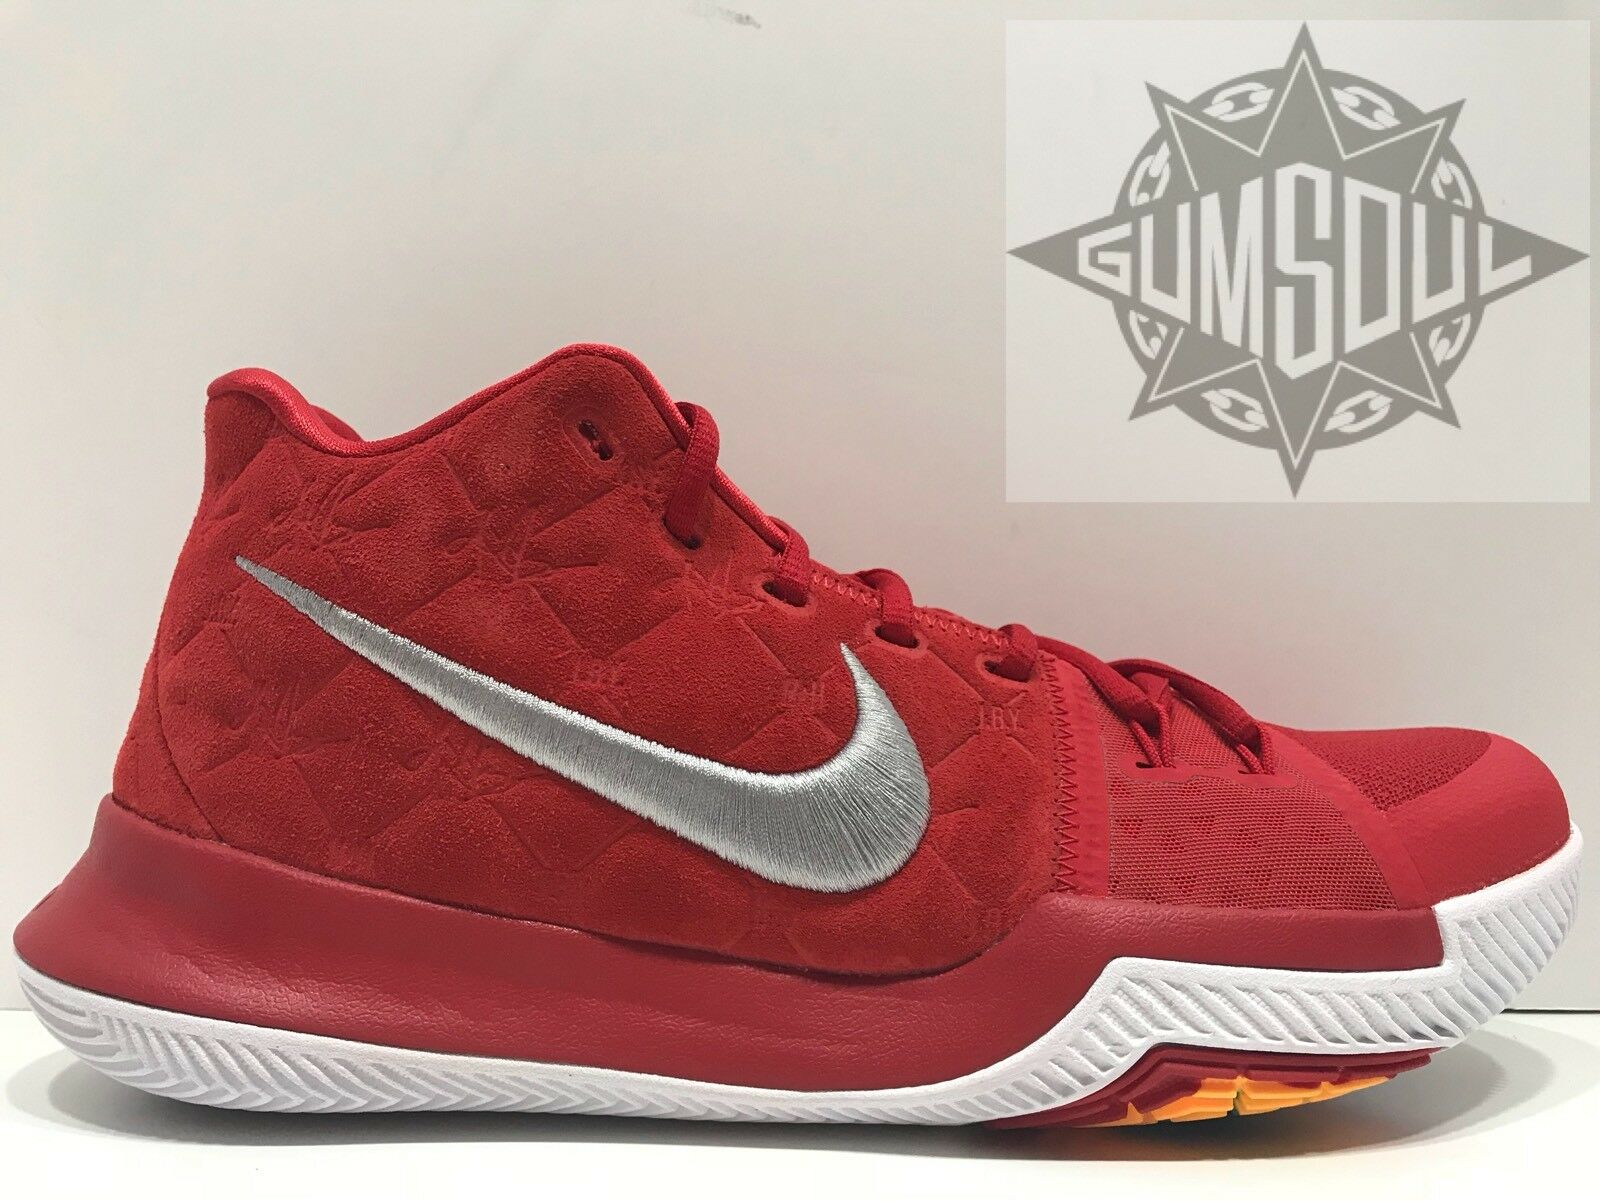 NIKE KYRIE 3 UNIVERSITY RED WHITE IRVING 852395 601 sz 13